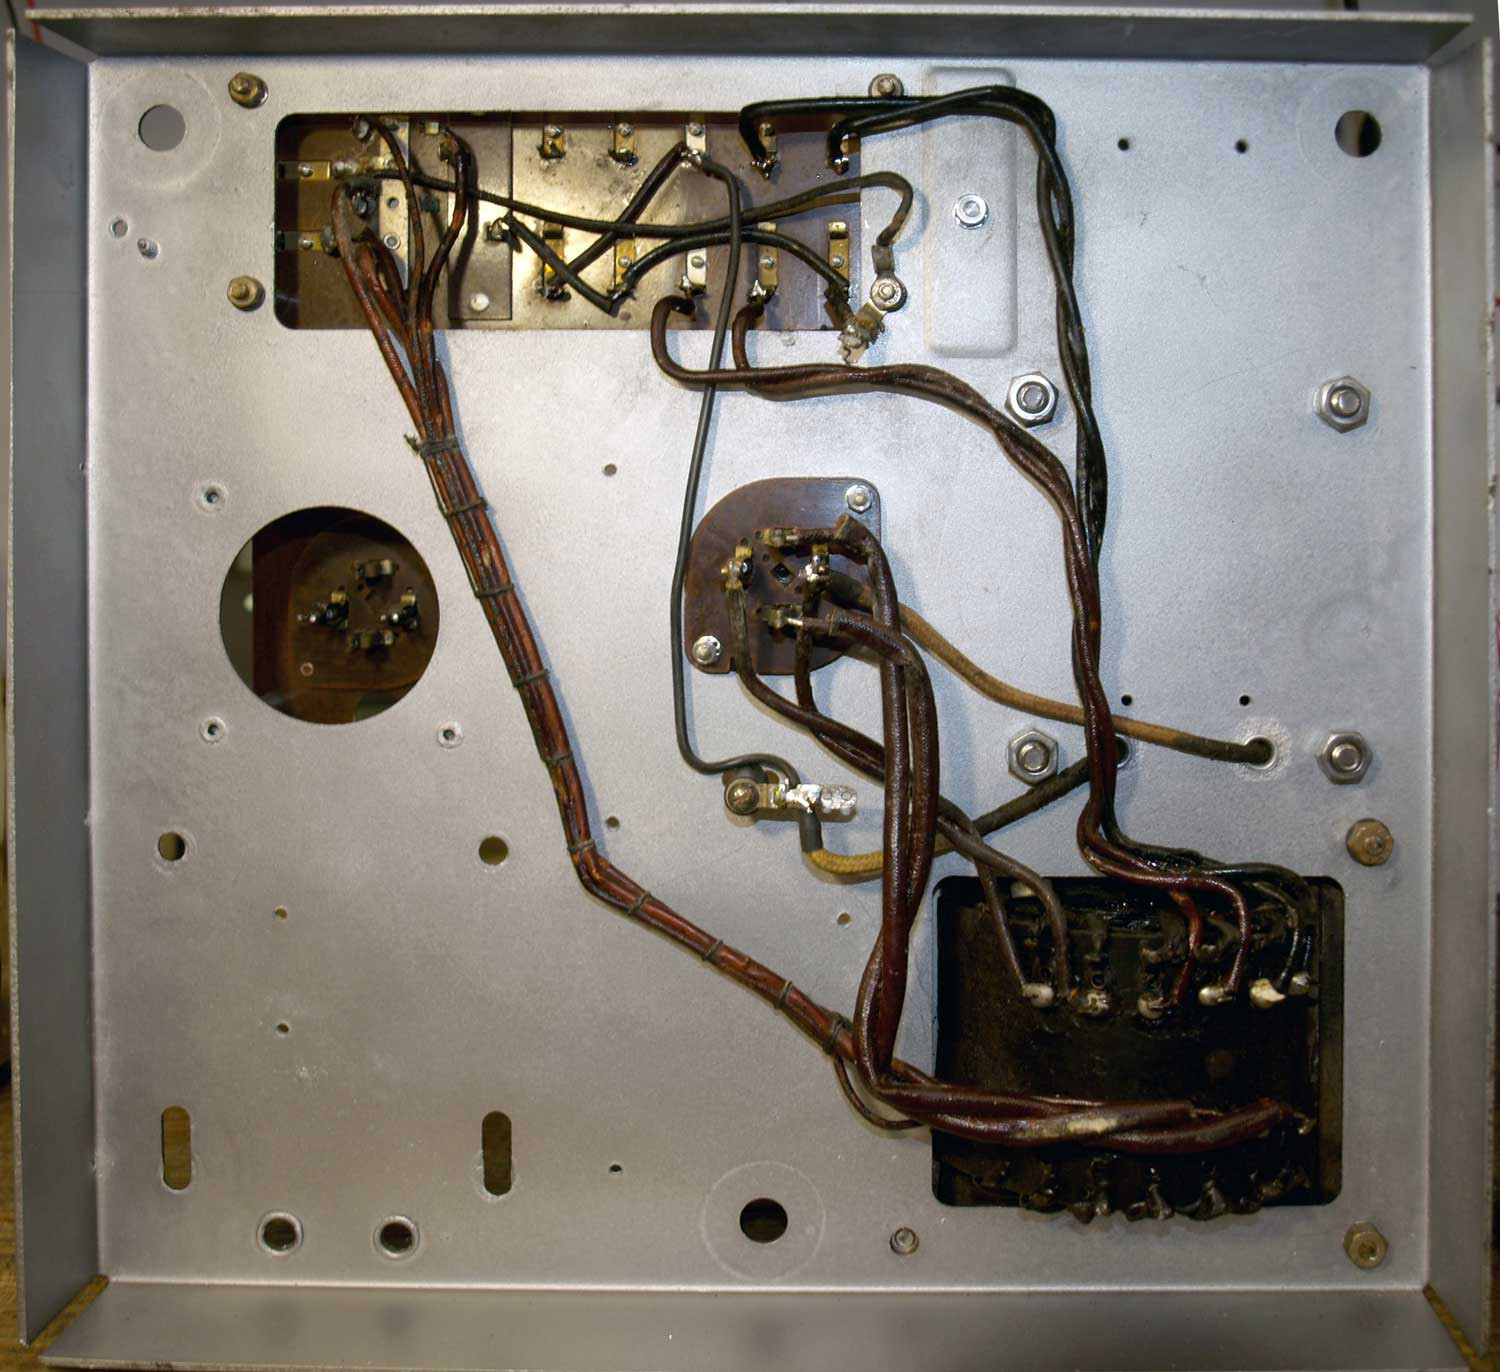 900-PSU-Under-during-Restoration.jpg